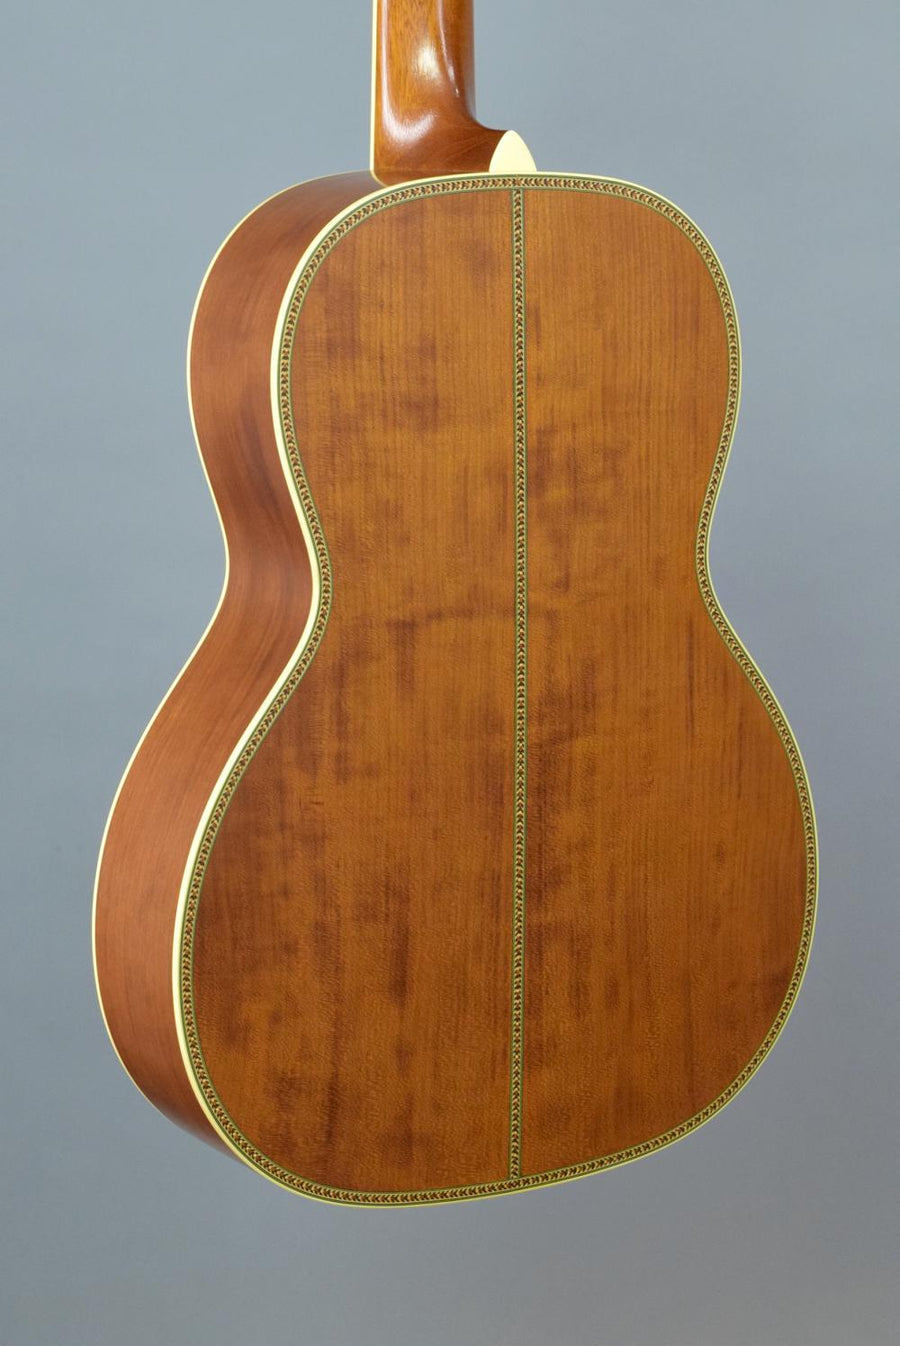 Waterloo WL-S Deluxe 12-Fret Acoustic Guitar